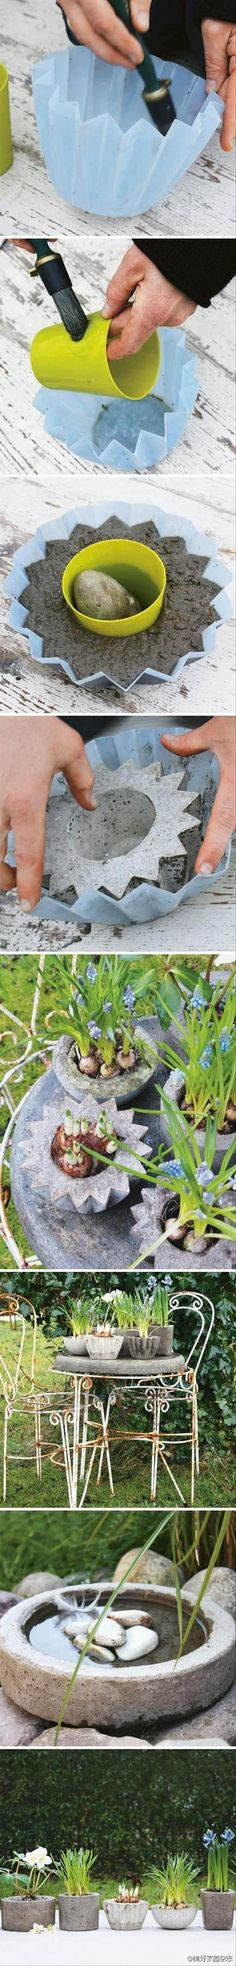 how to make your own flower pots